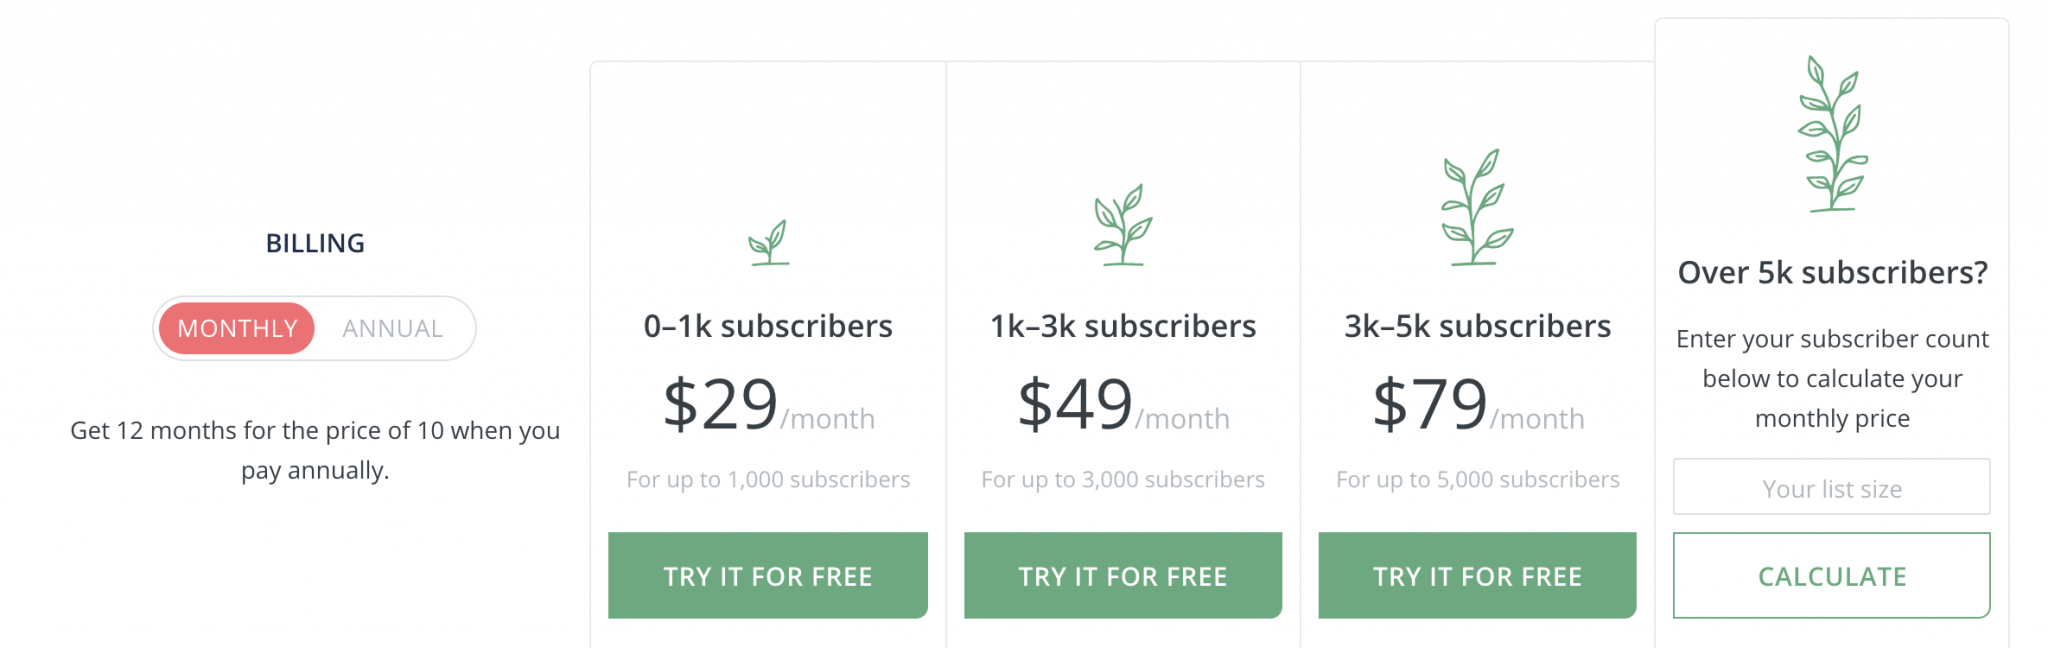 Online Promo Code 20 Off Convertkit Email Marketing 2020